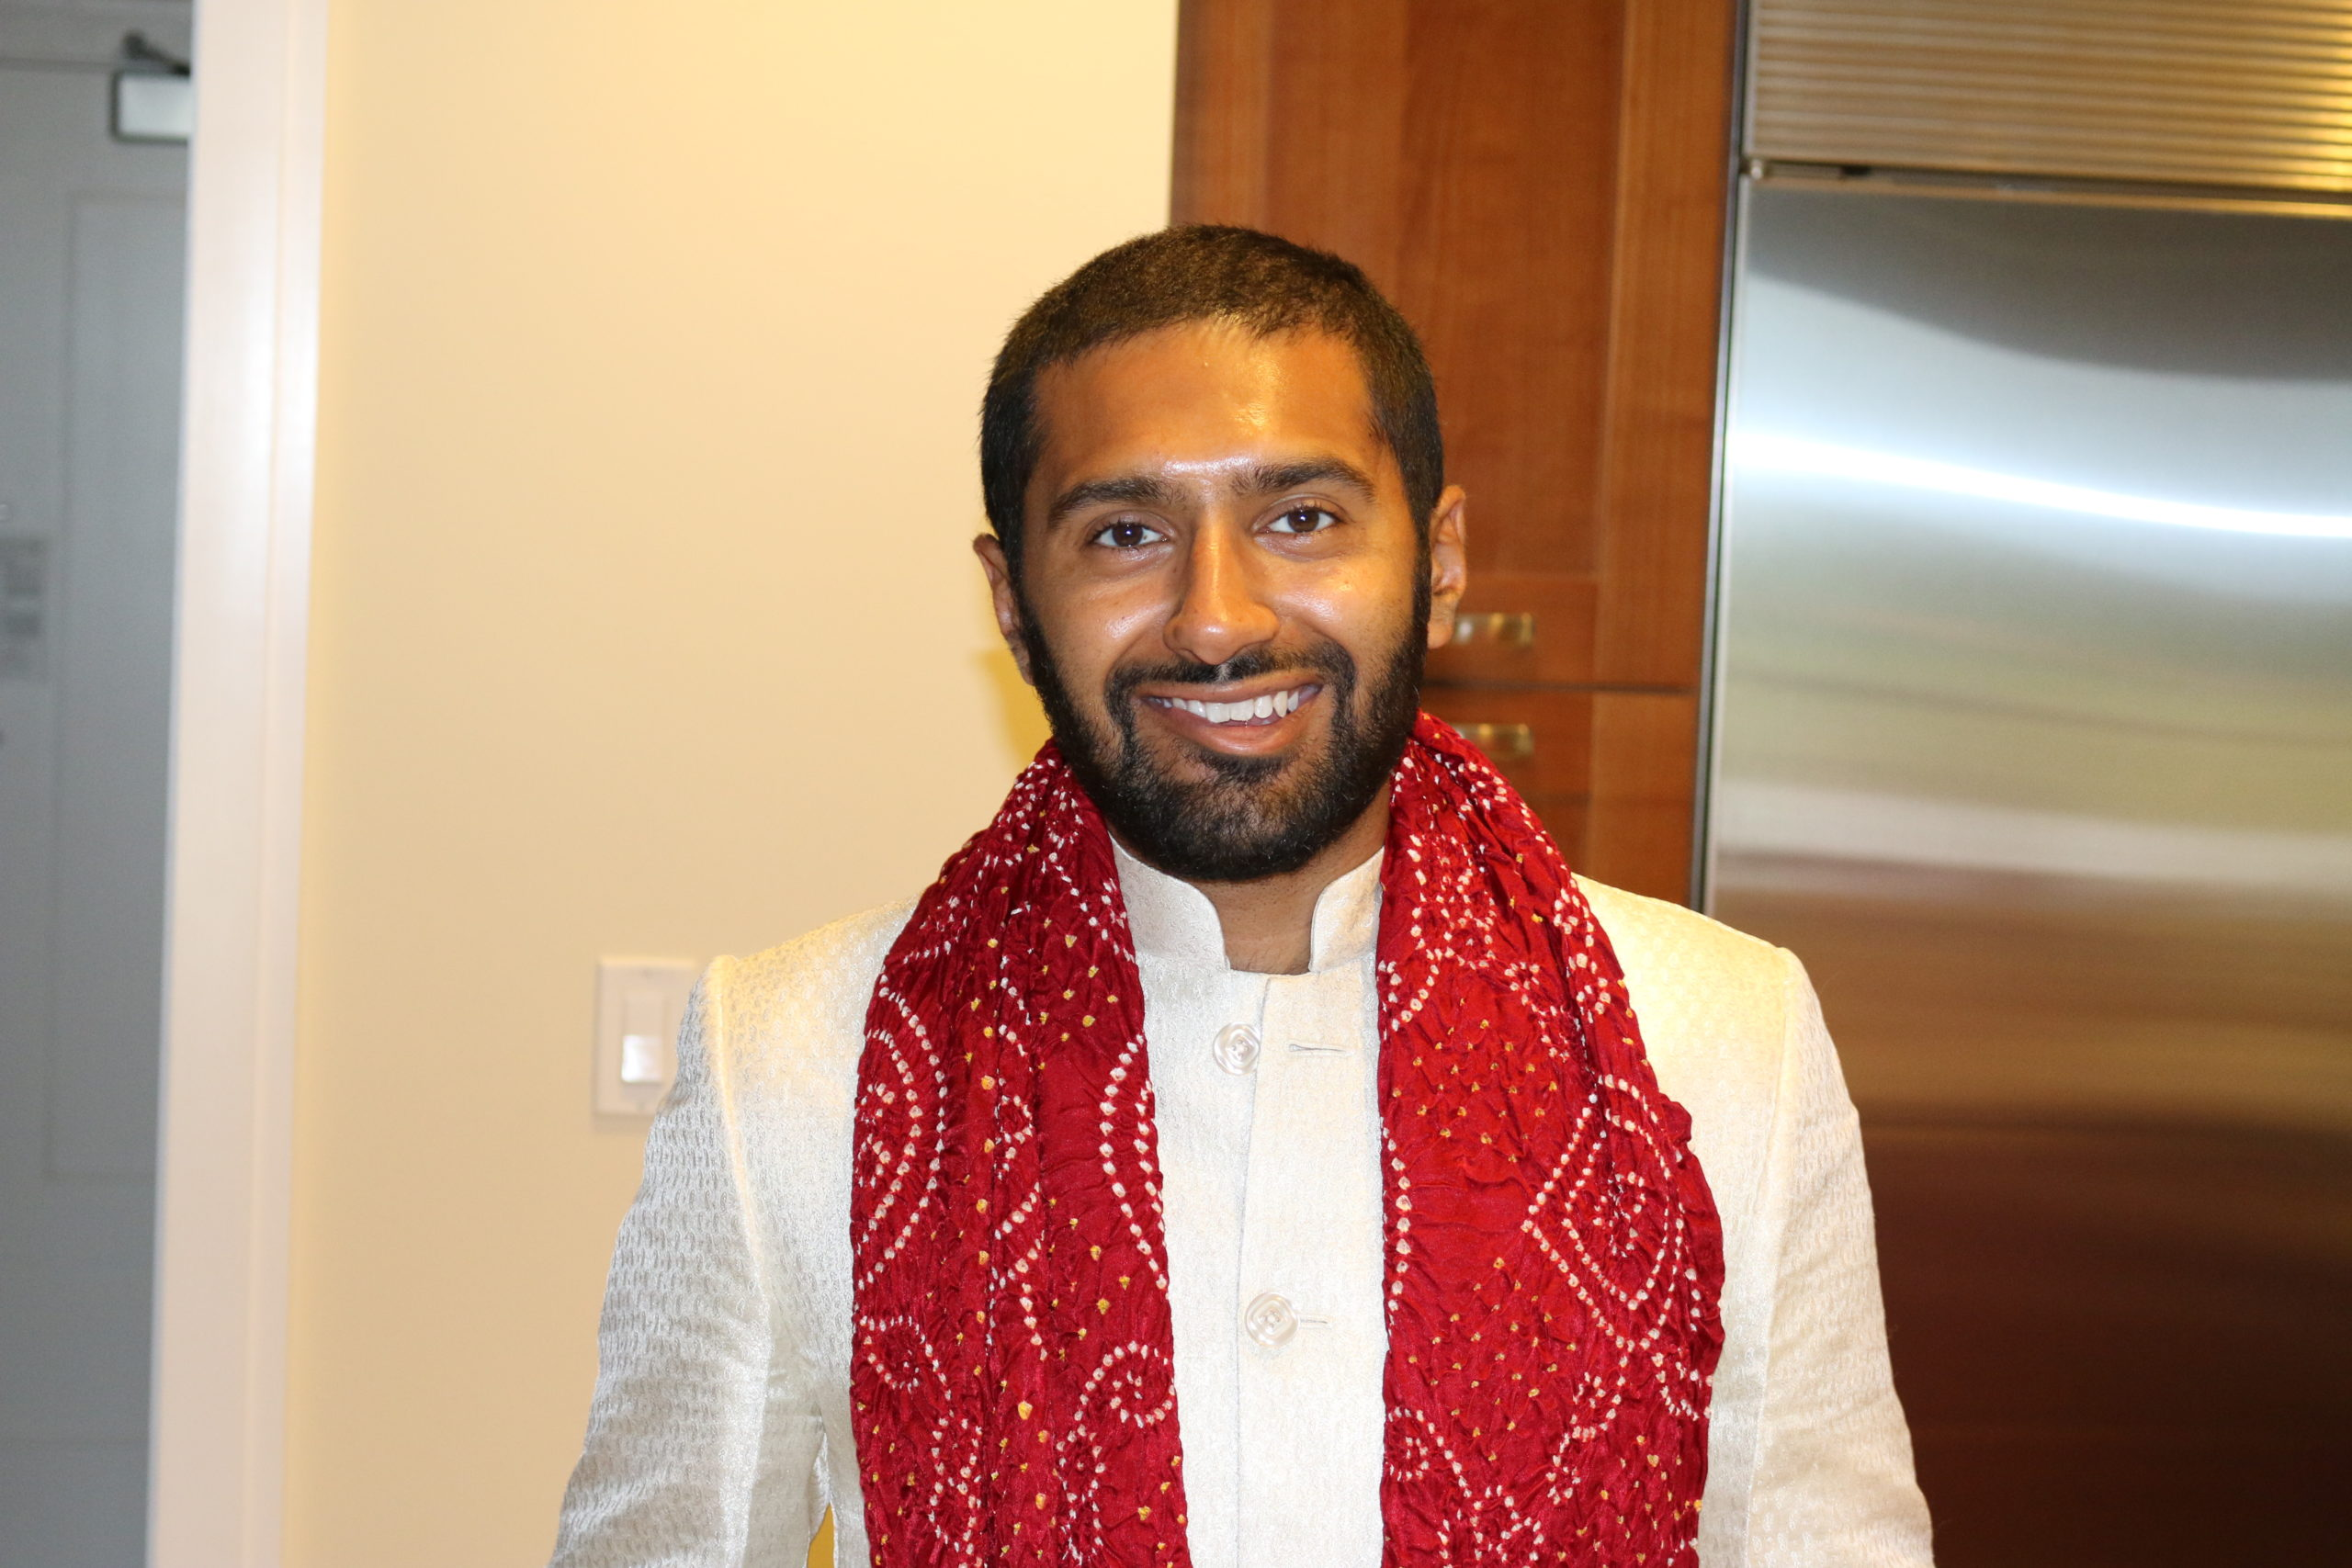 Rushi Vyas with buzzed beard and hair in a white shirt with a red scarf